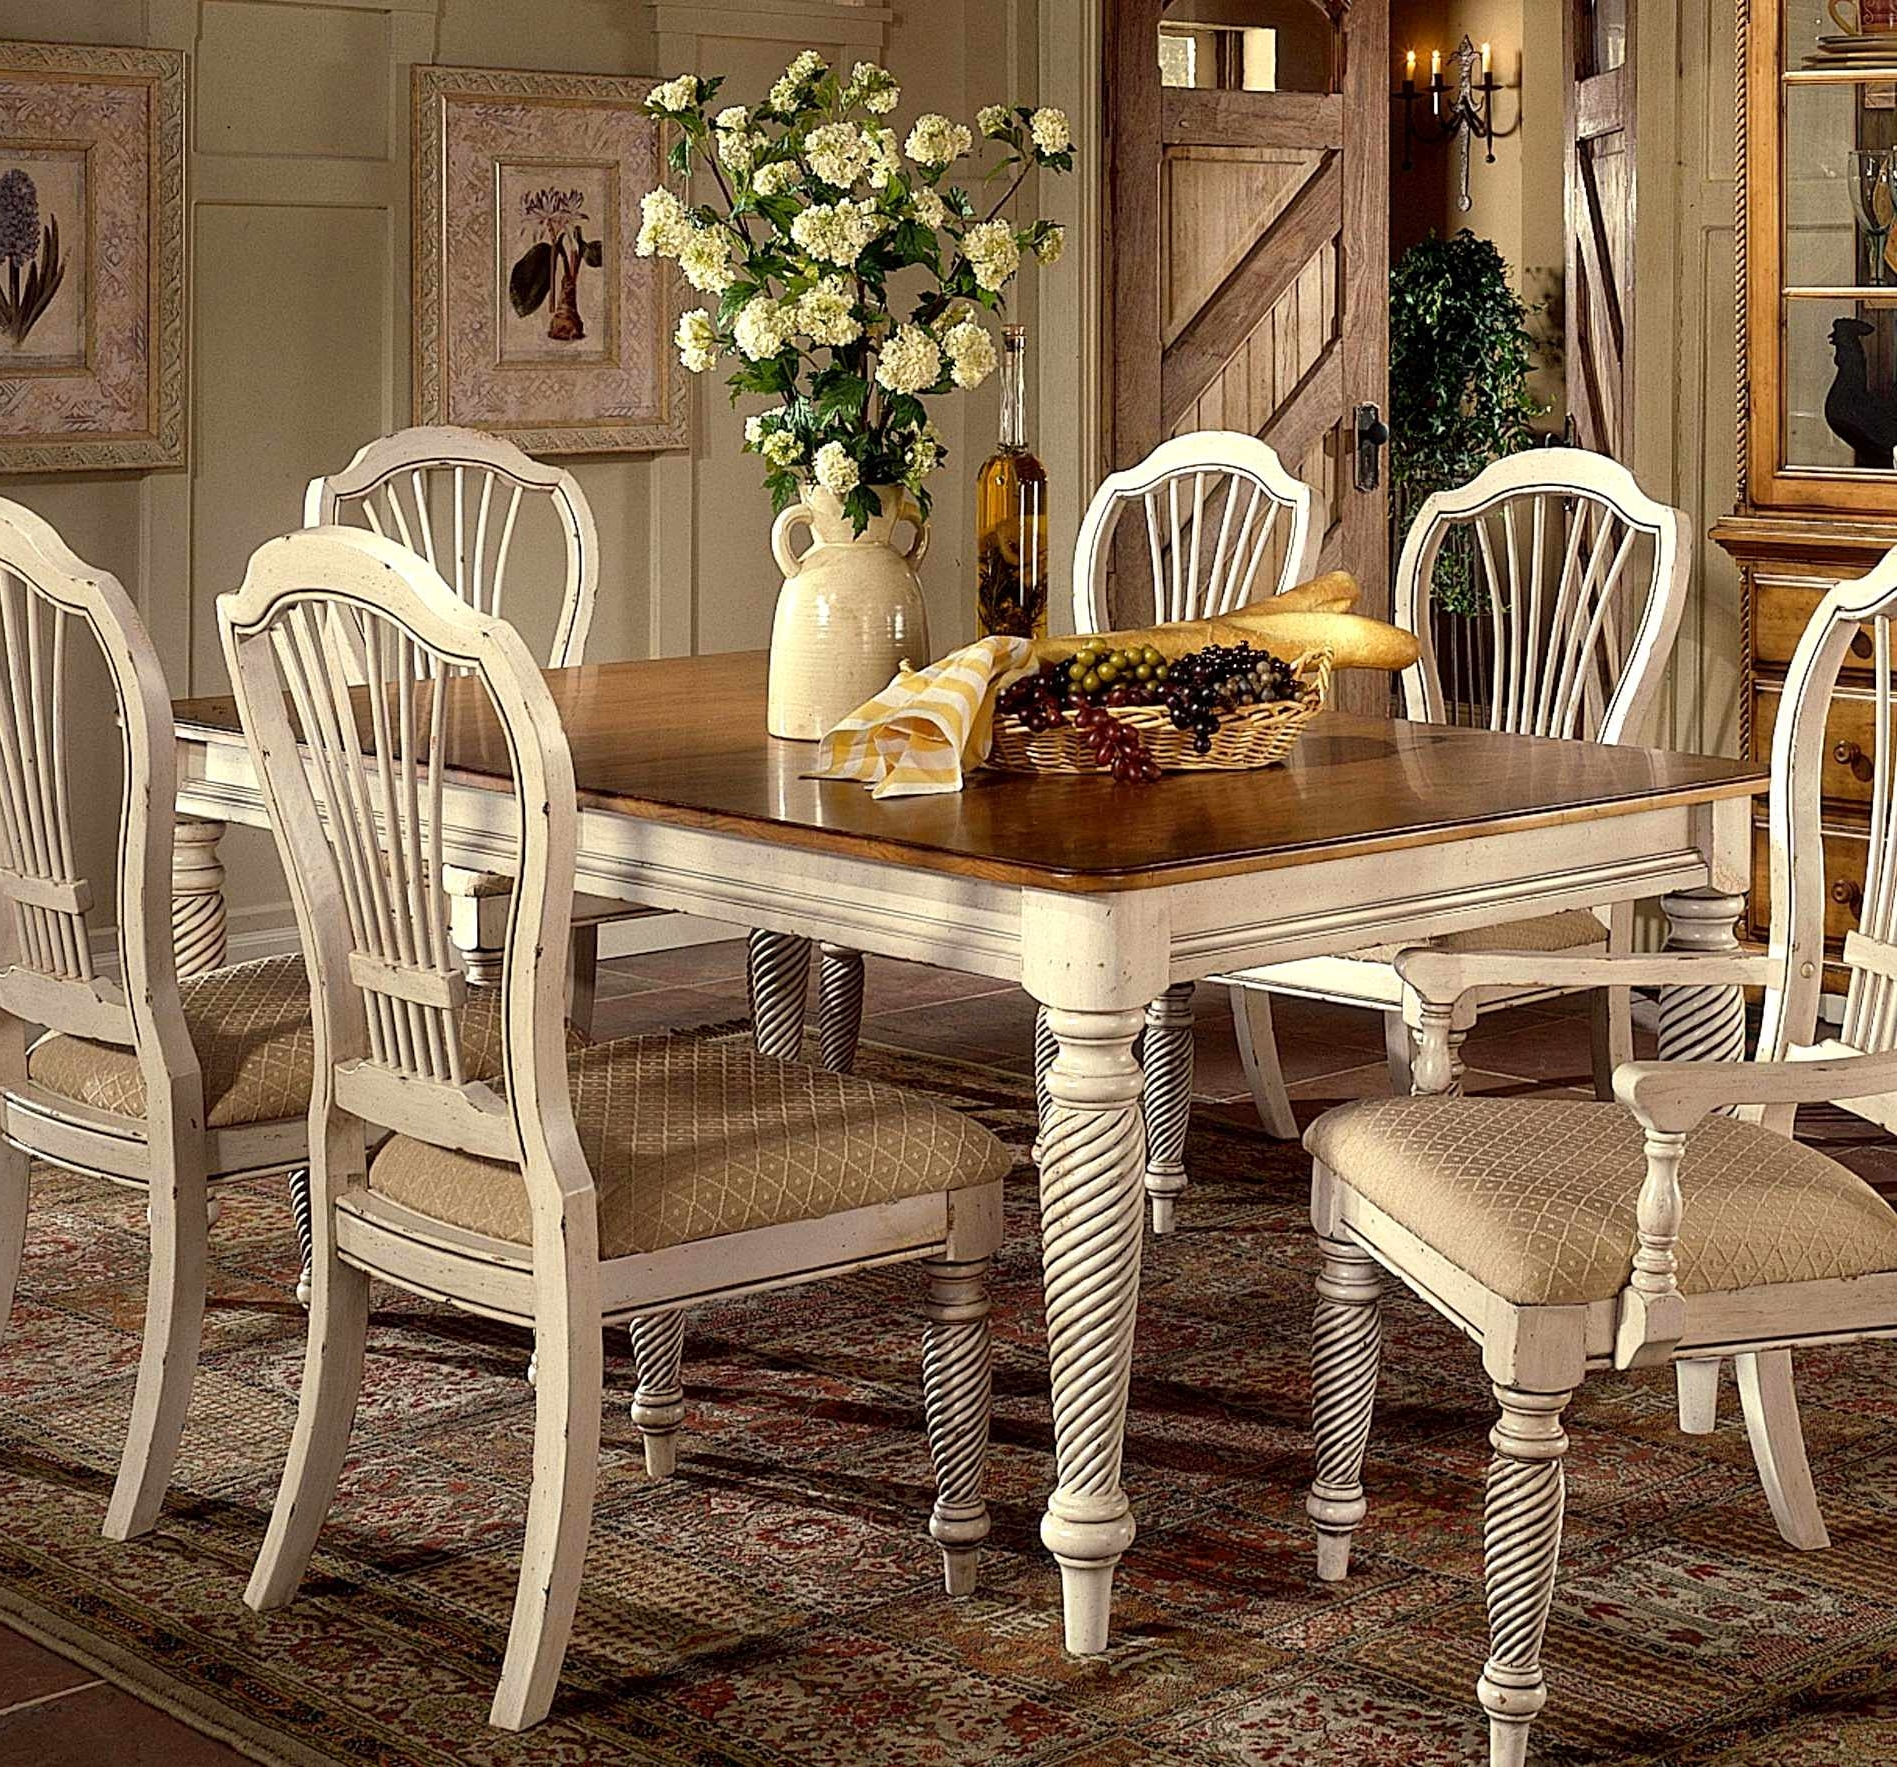 Fashionable Ebay Dining Suites In Charming Antique Furniture Dining Room Set – Esescatrina (View 21 of 25)